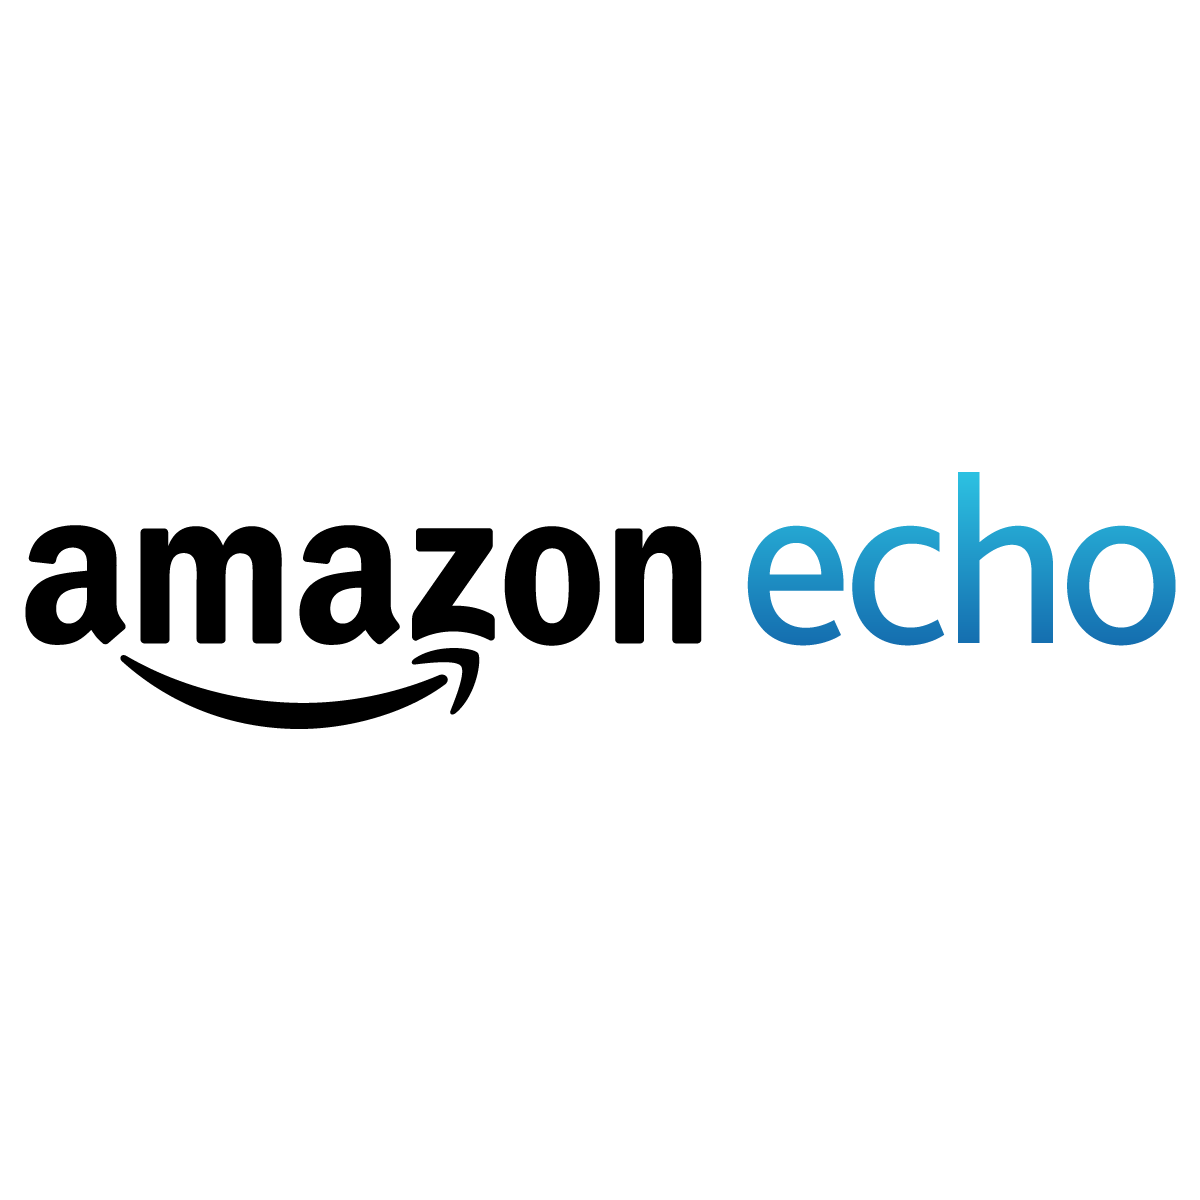 Amazon Echo Vector Logo.